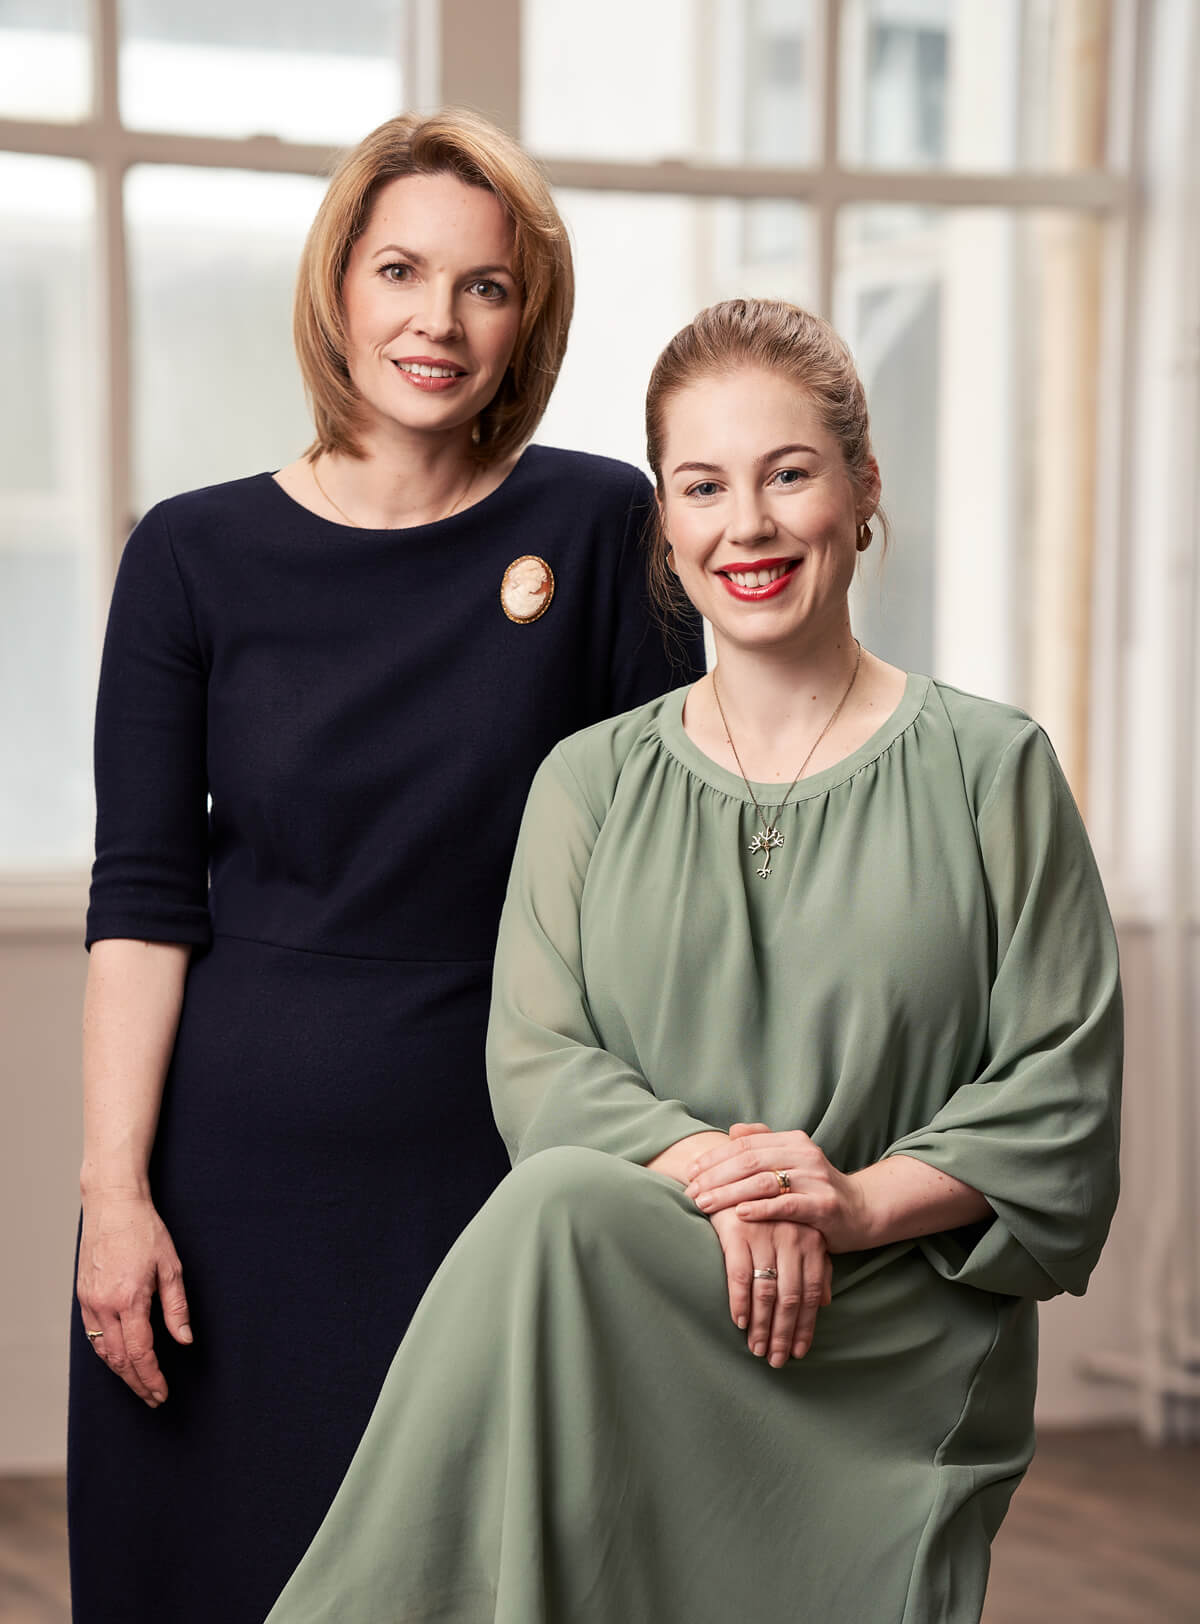 Join Kate Sheppard Chambers